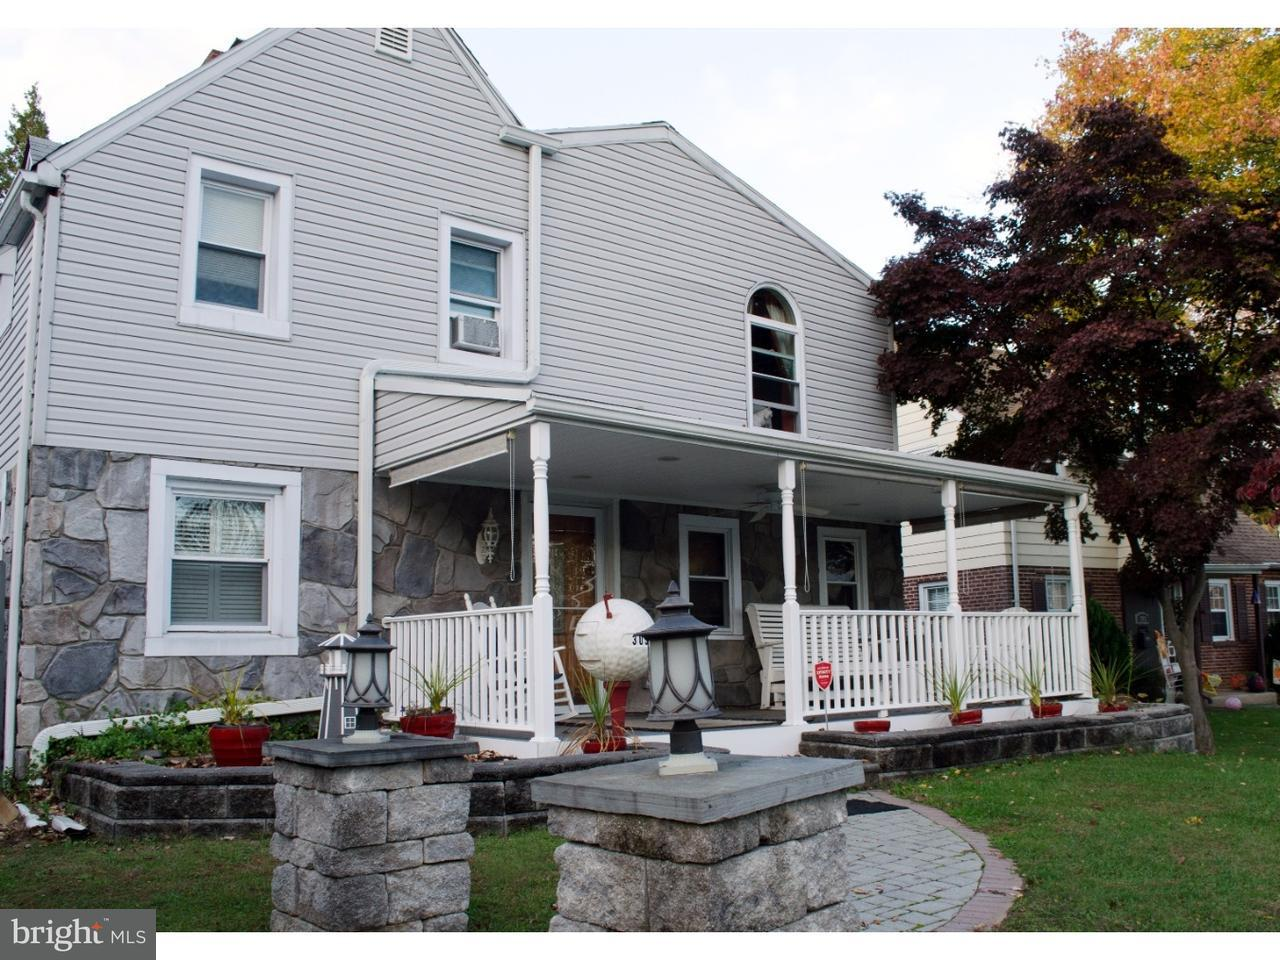 Single Family Home for Sale at 305 HARDING Avenue Folsom, Pennsylvania 19033 United States